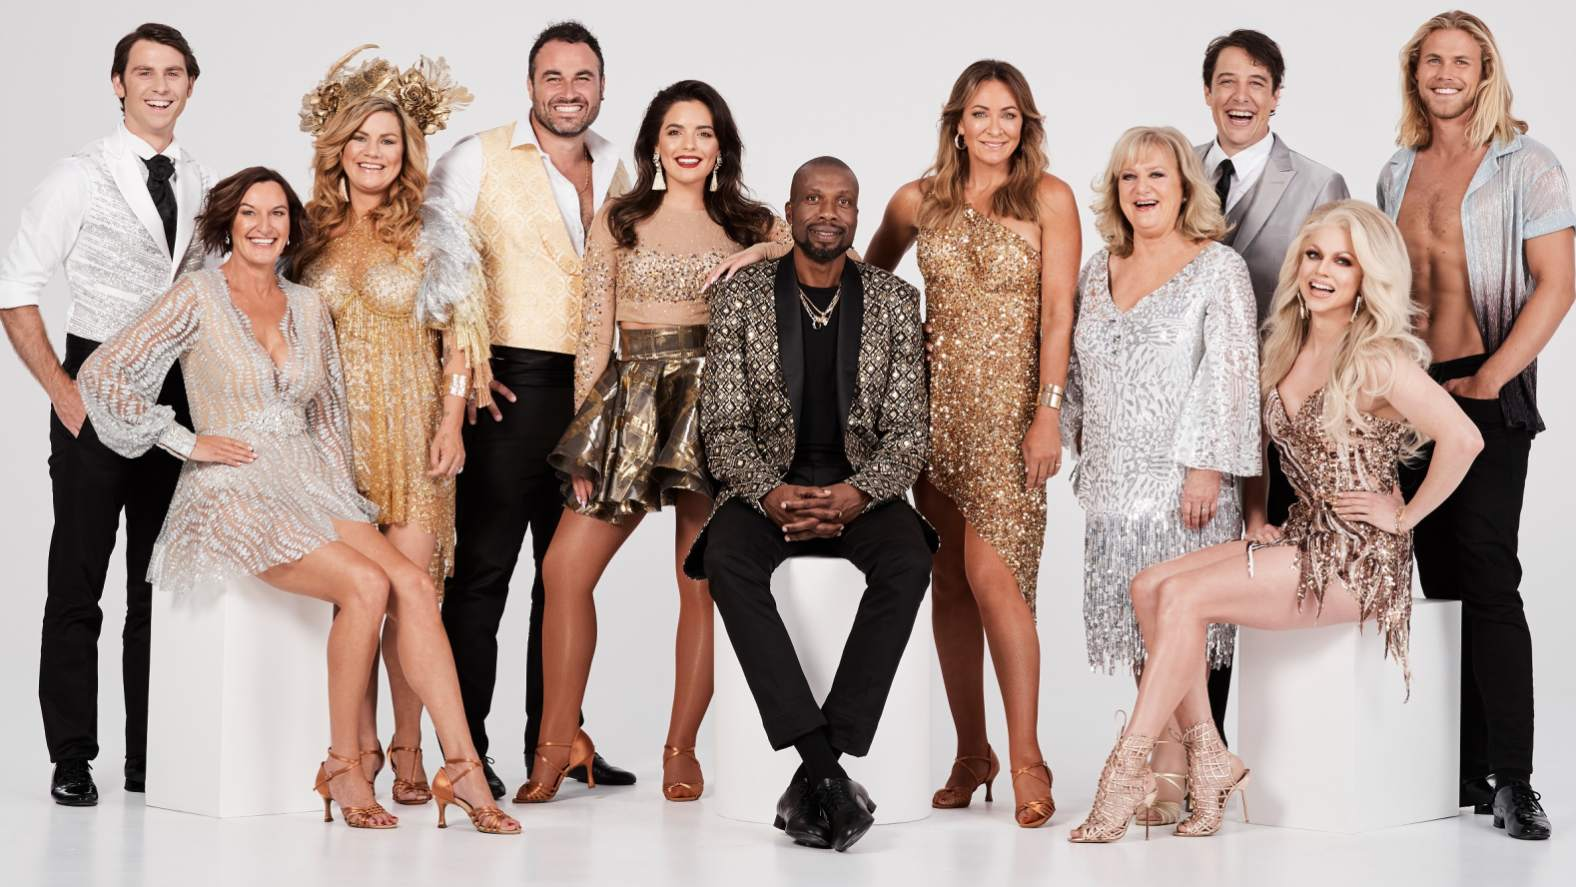 Dancing with the stars cast